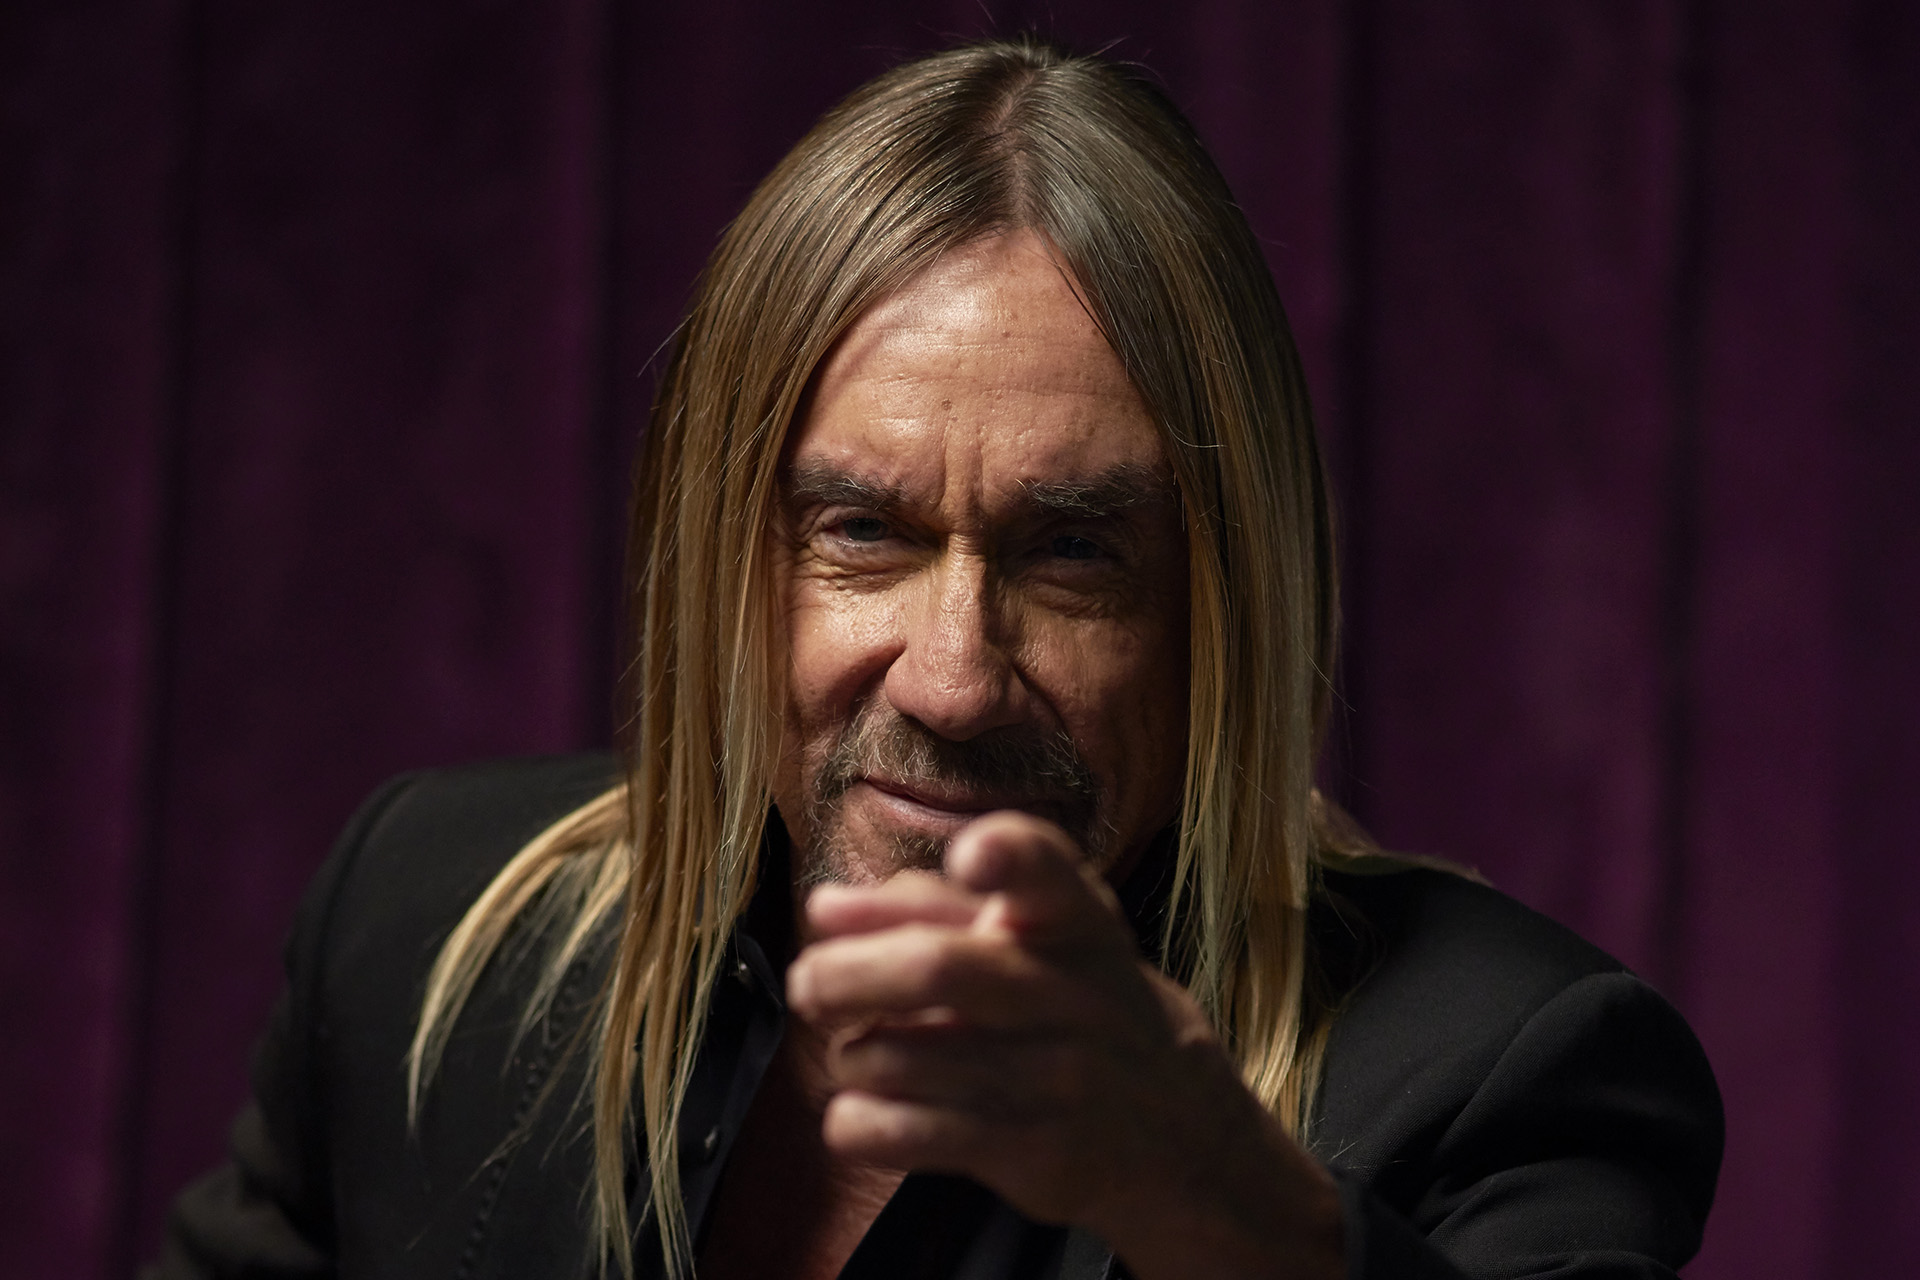 Iggy Pop and Bill Laswell are coming – separately and together – to Jazz Middelheim